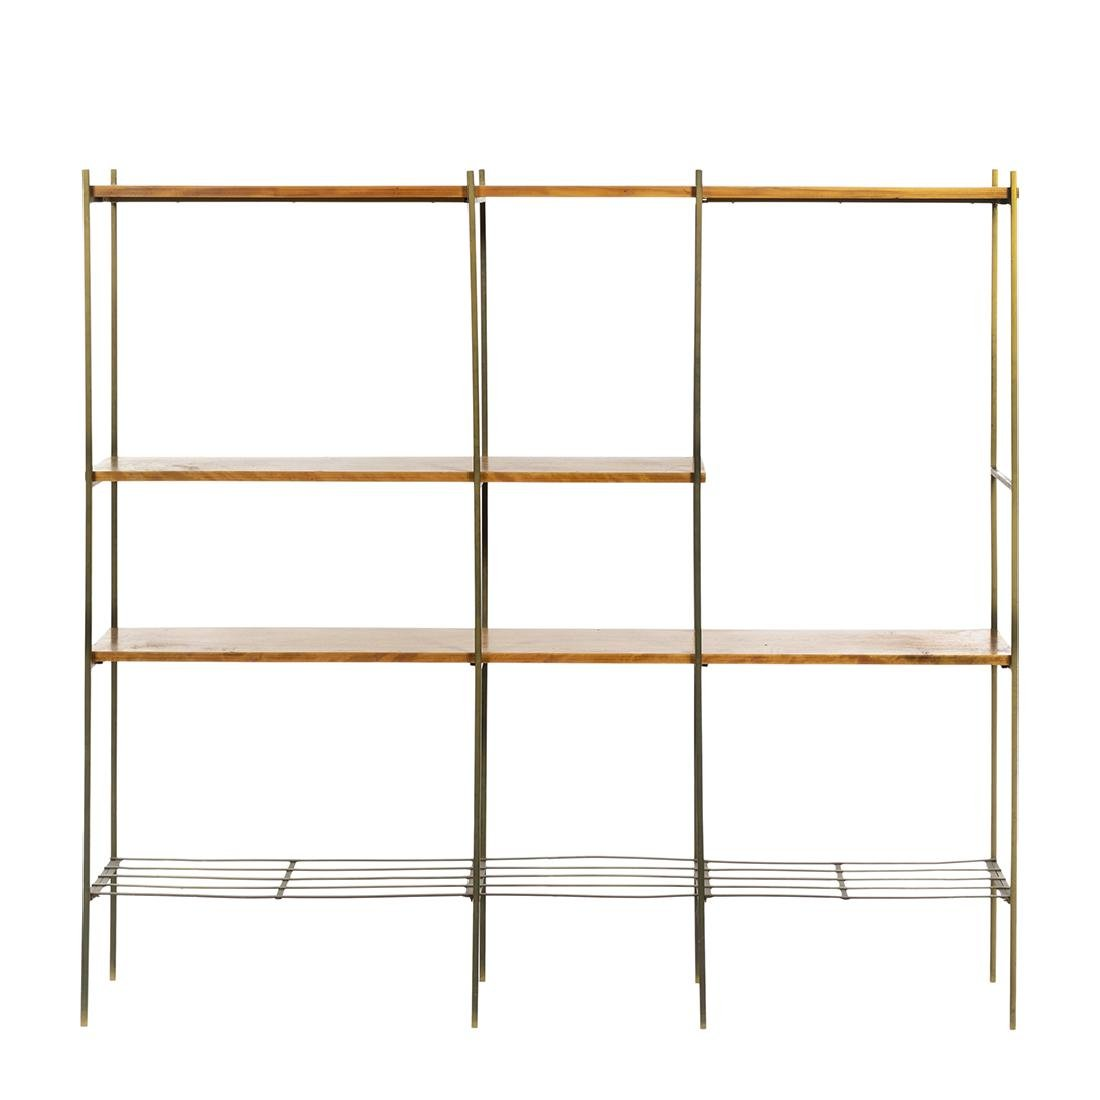 Kenneth Lind Room Divider